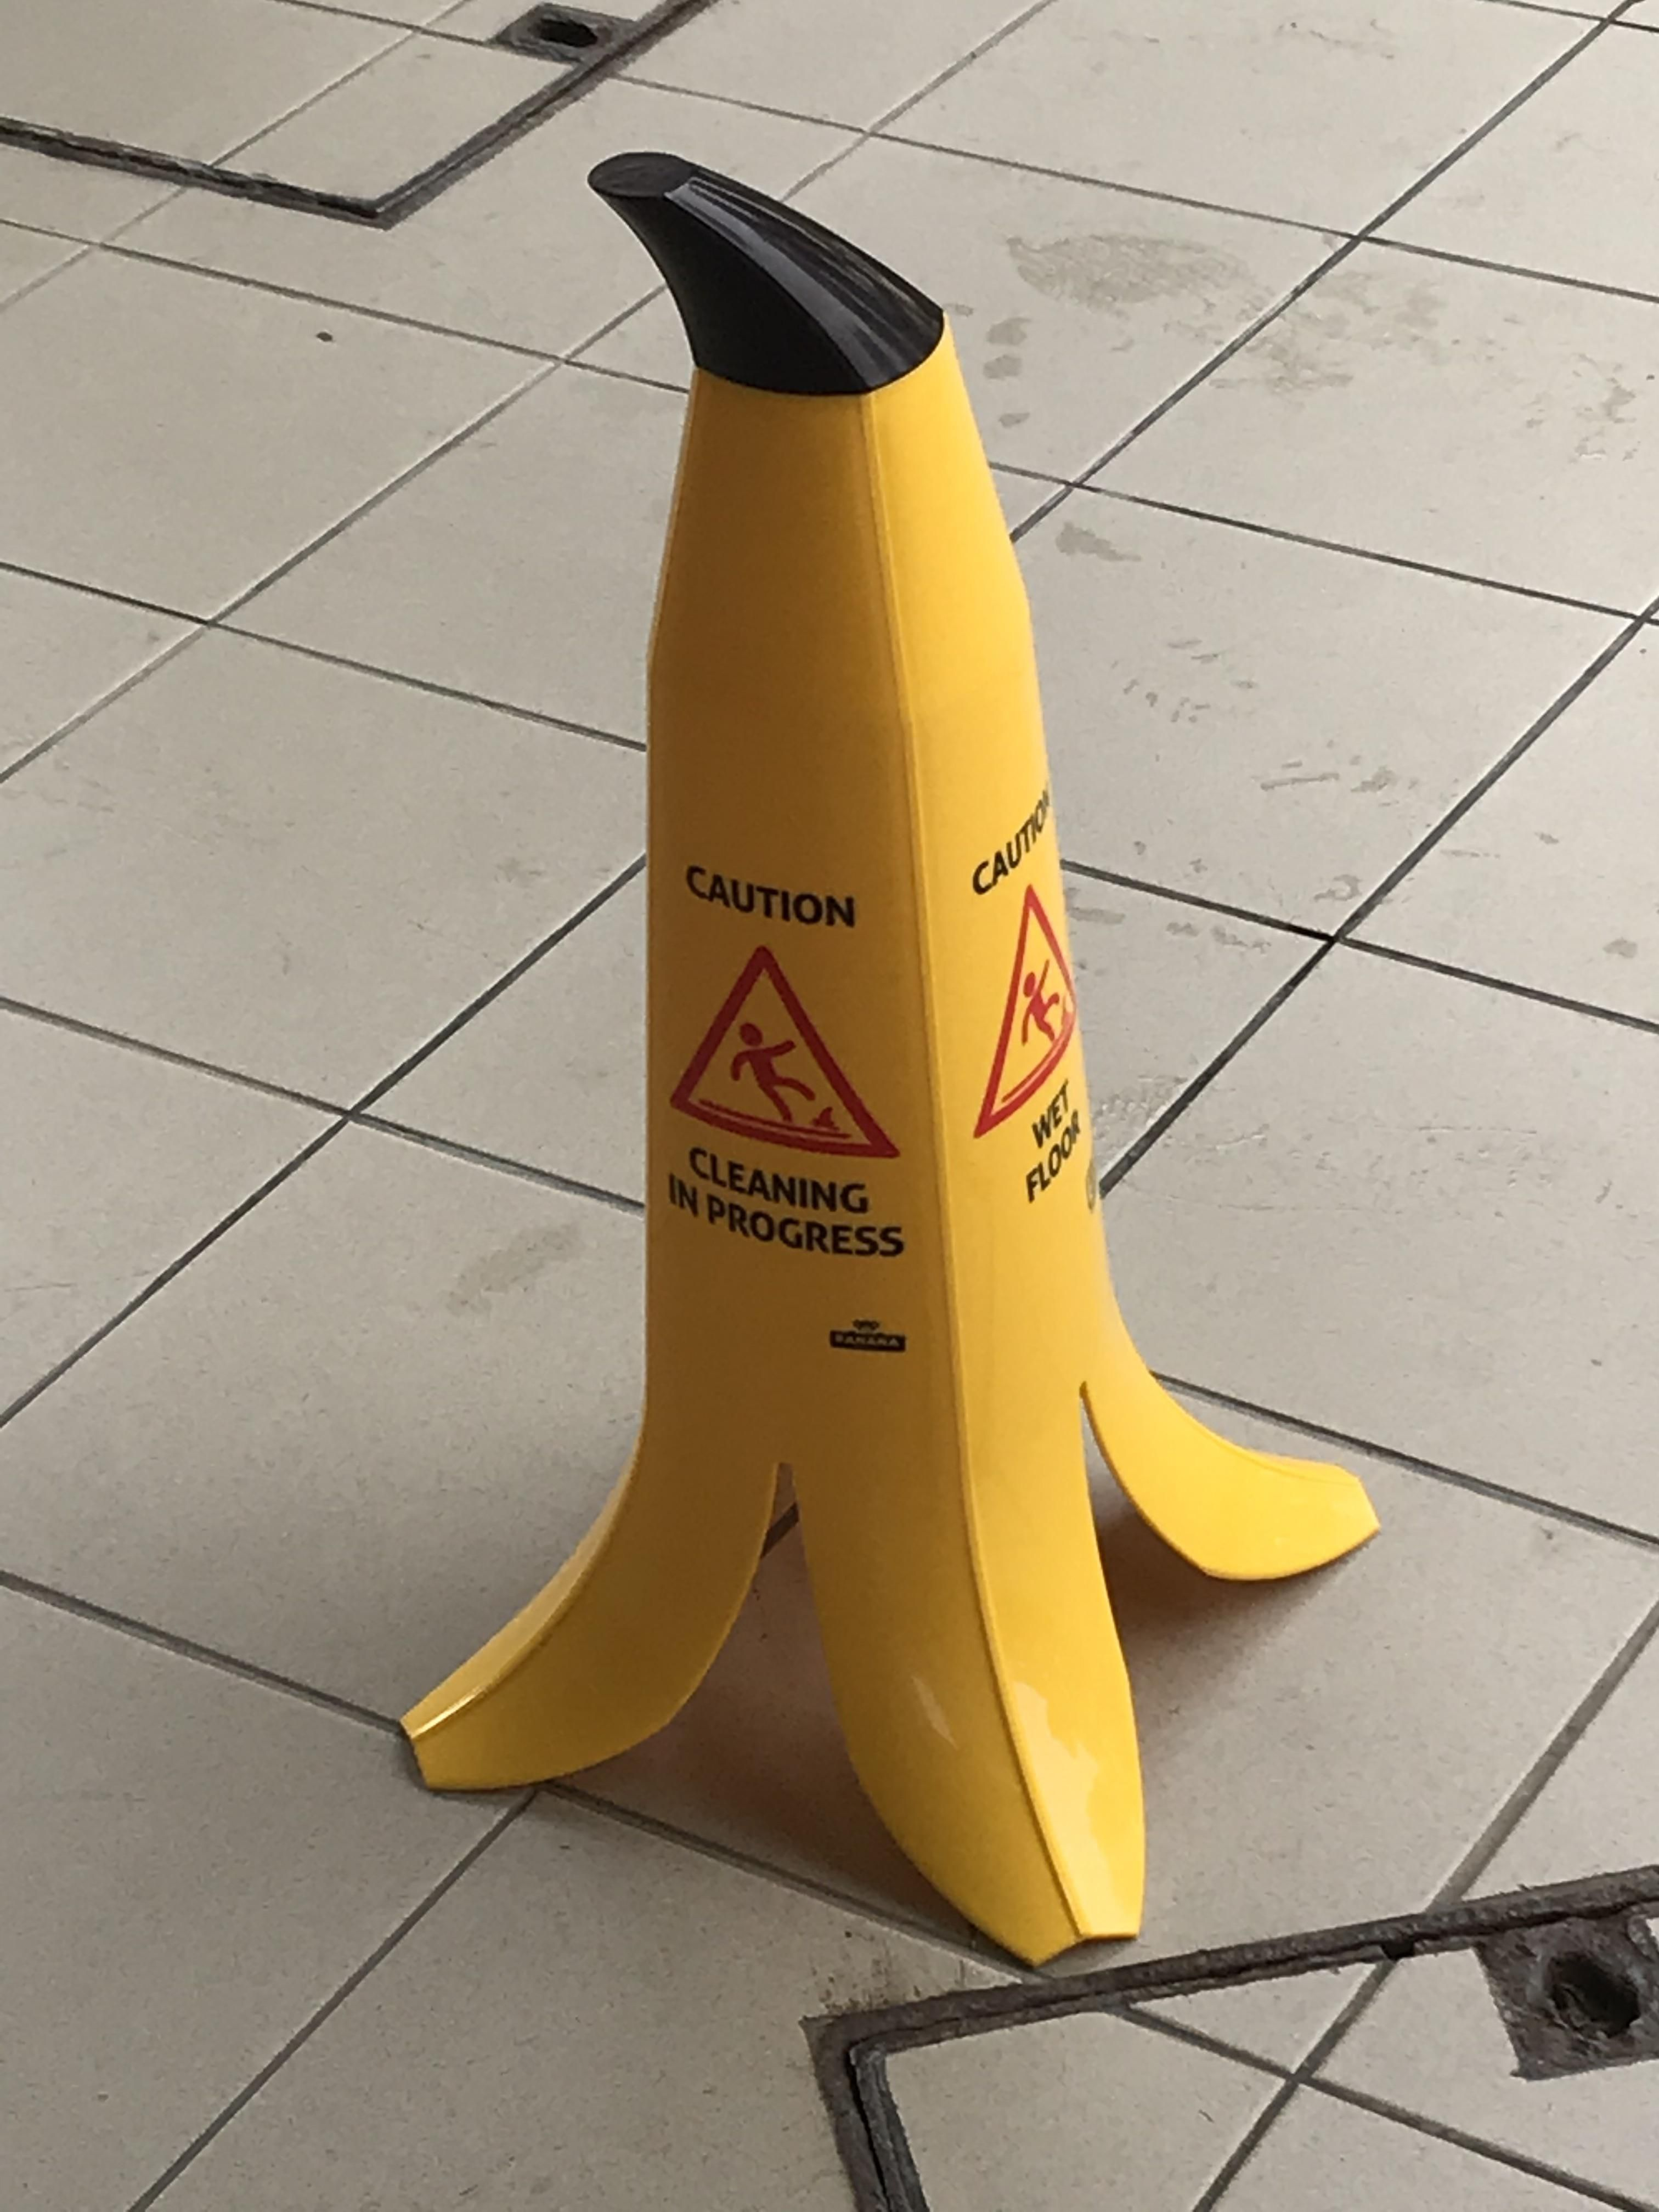 Watch out for the banana peel!